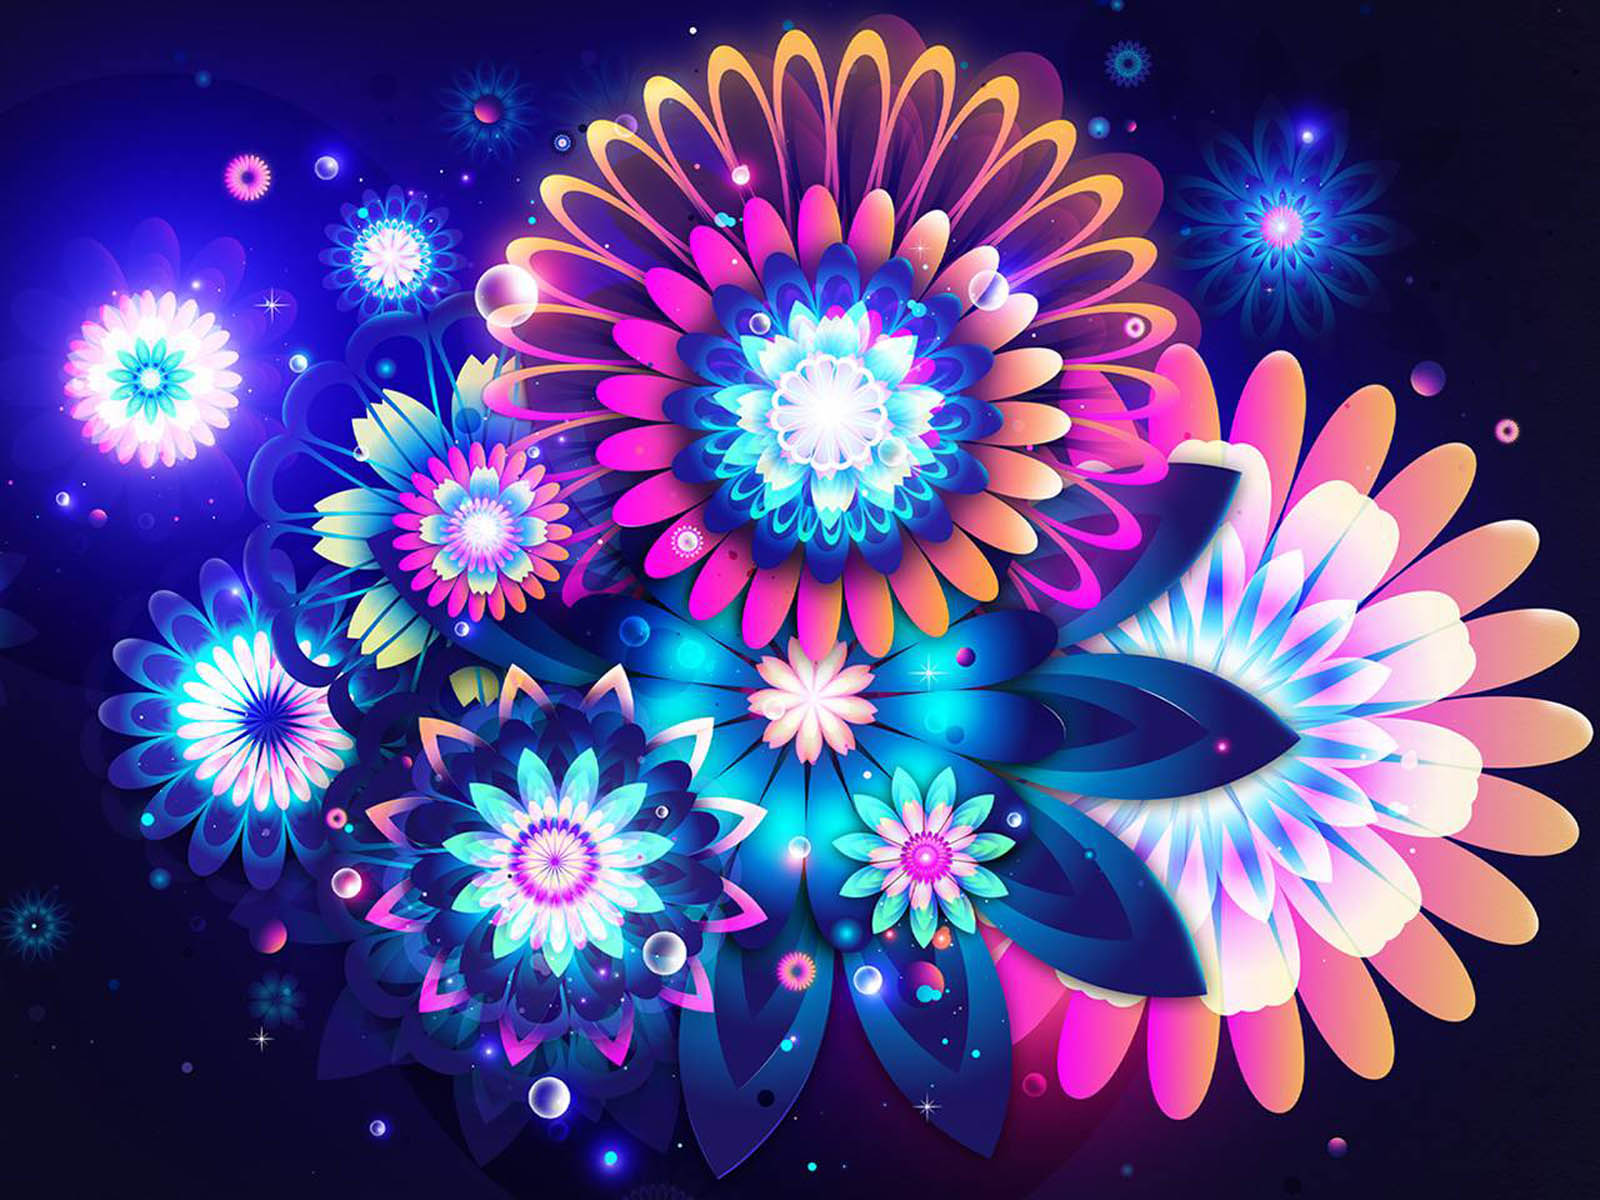 Abstract Wallpaper Flowers Beautiful 3178 Wallpaper